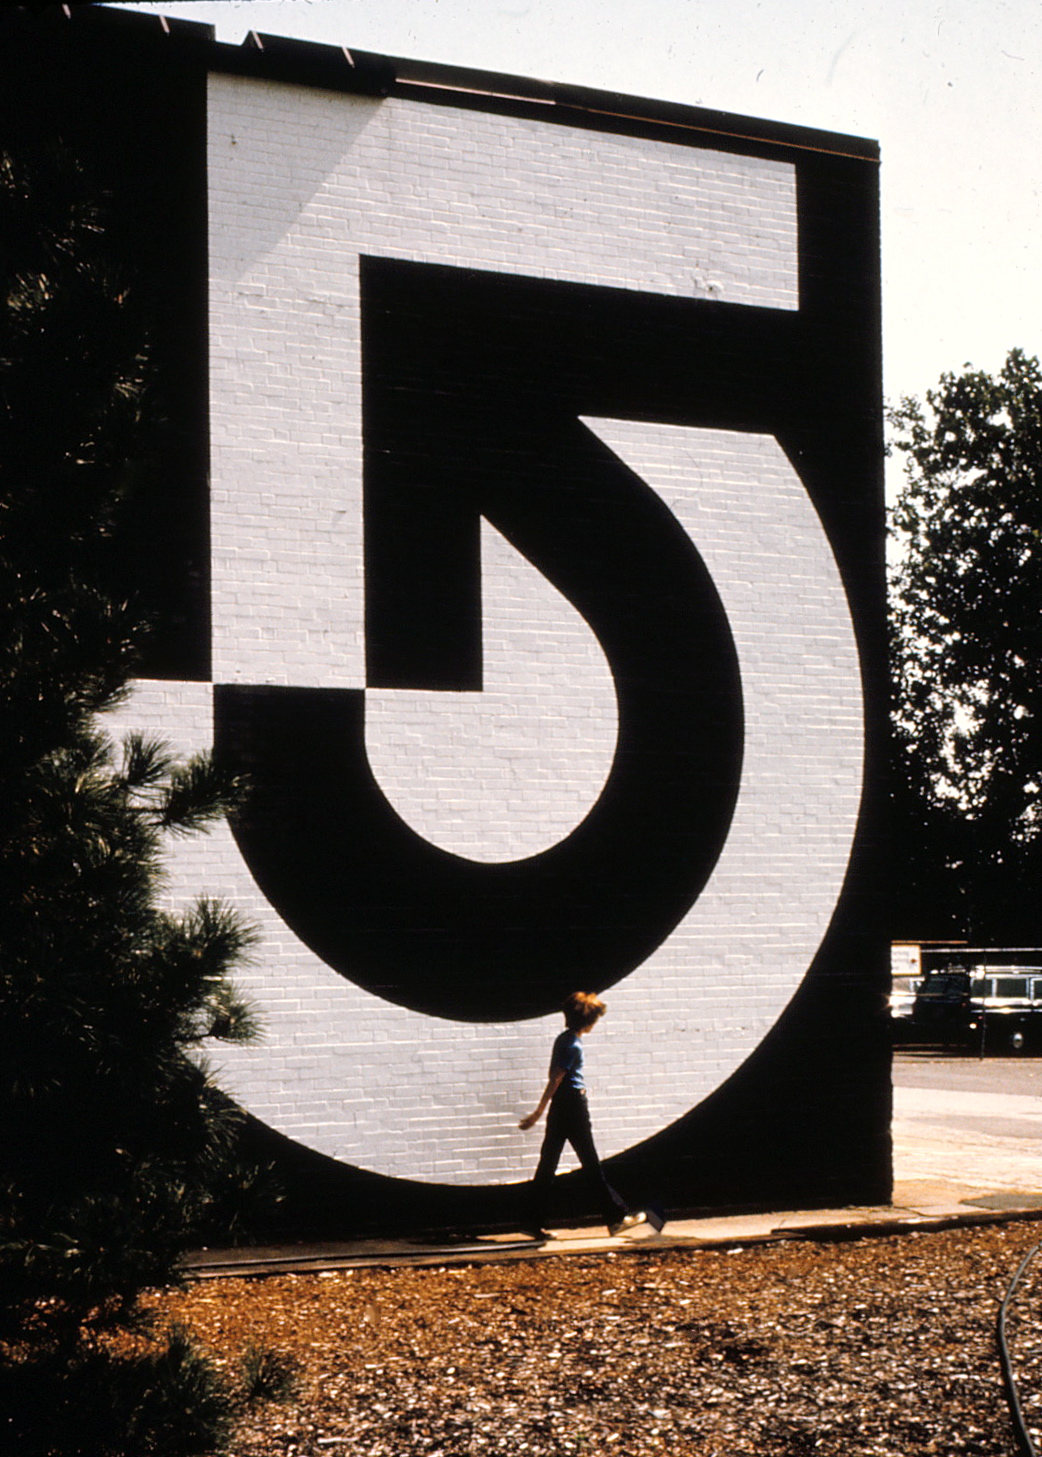 Side of building with Channel 5 symbol